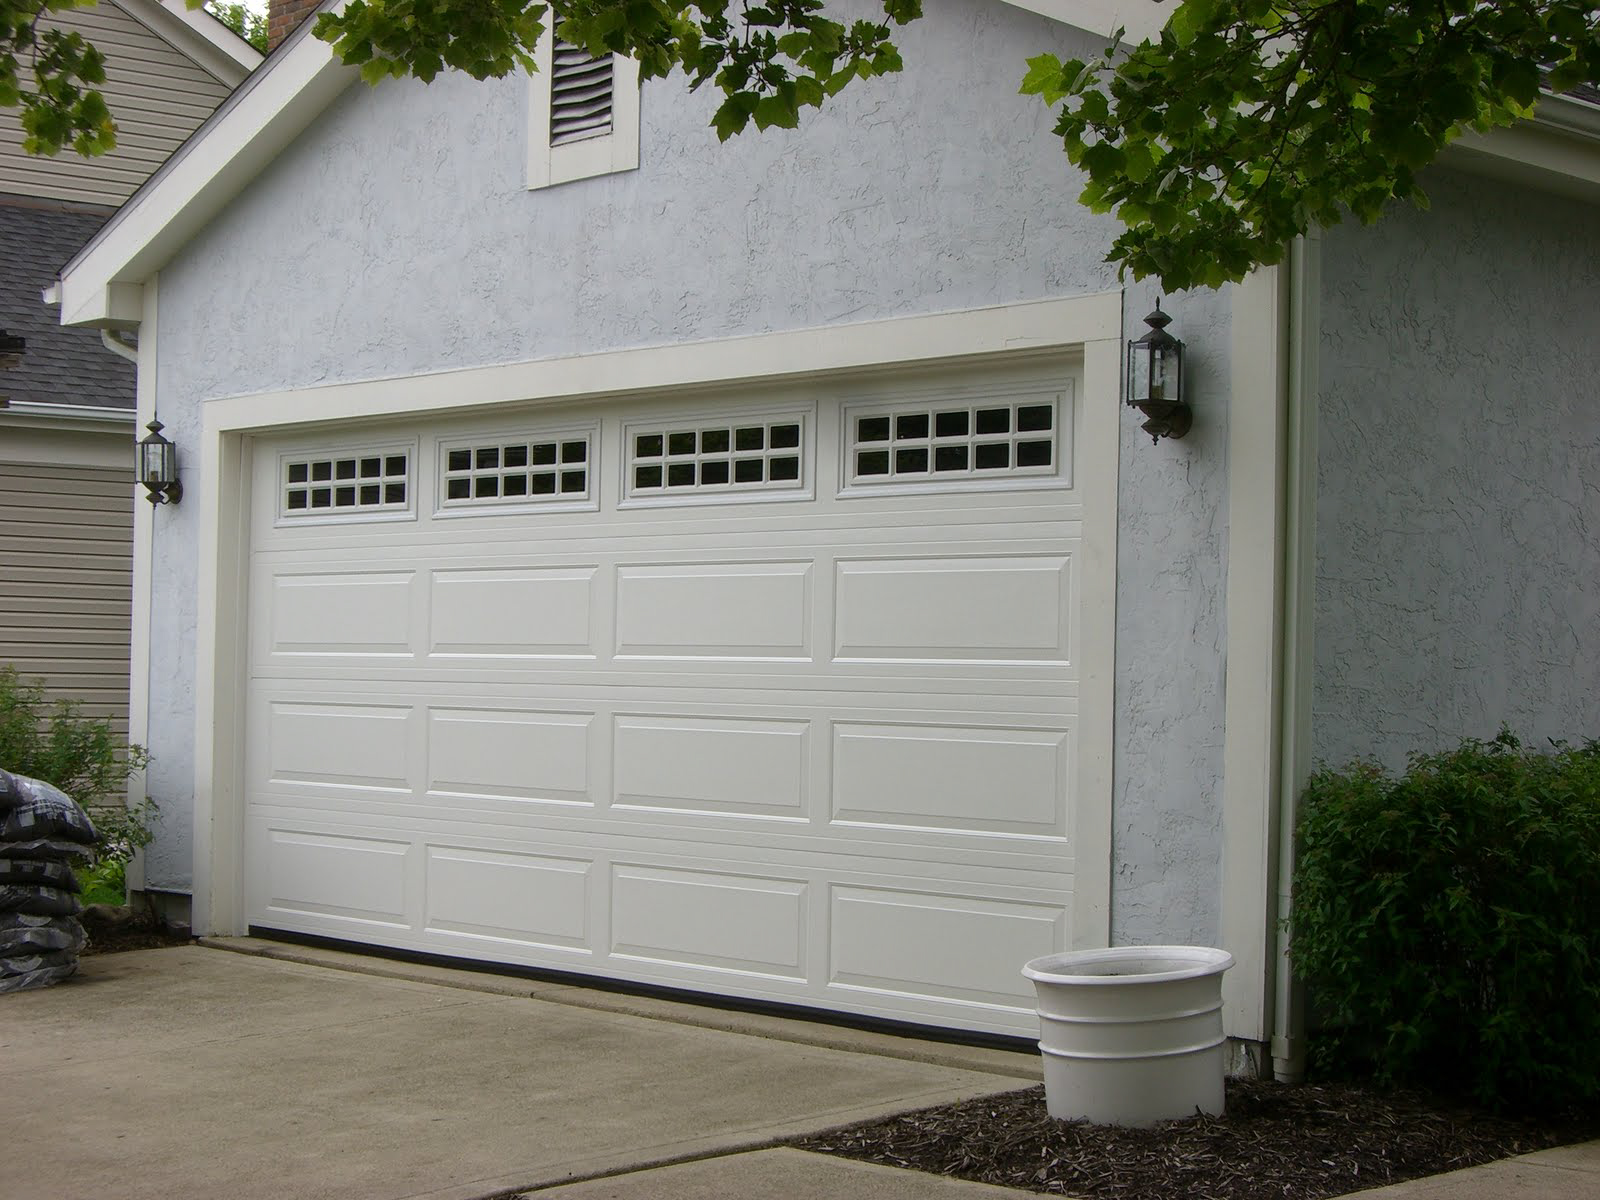 Ranch Panel Garage Doors St Cloud Mn  American Door Works. Sliding Glass Door Replacement. Small Media Cabinet With Glass Doors. 36x80 Entry Door. Phantom Door Screens. Magnetic Door Holder. Garage Door Repair Princeton Nj. Clear Door Fridge. Unusual Door Knobs For Sale